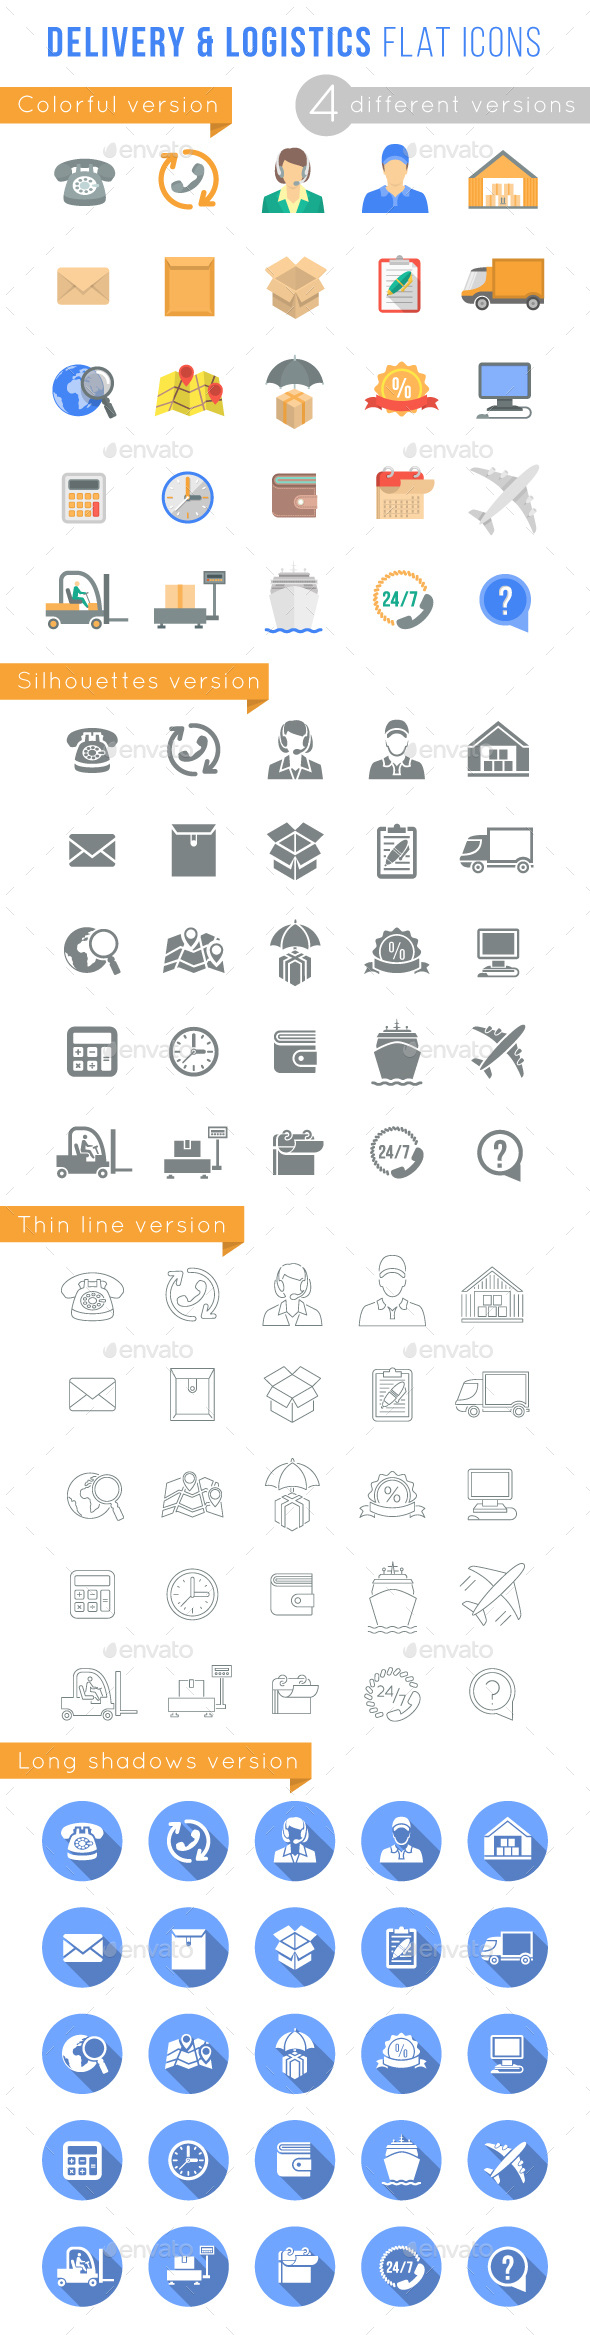 Delivery and Logistics Services Flat Web Icons